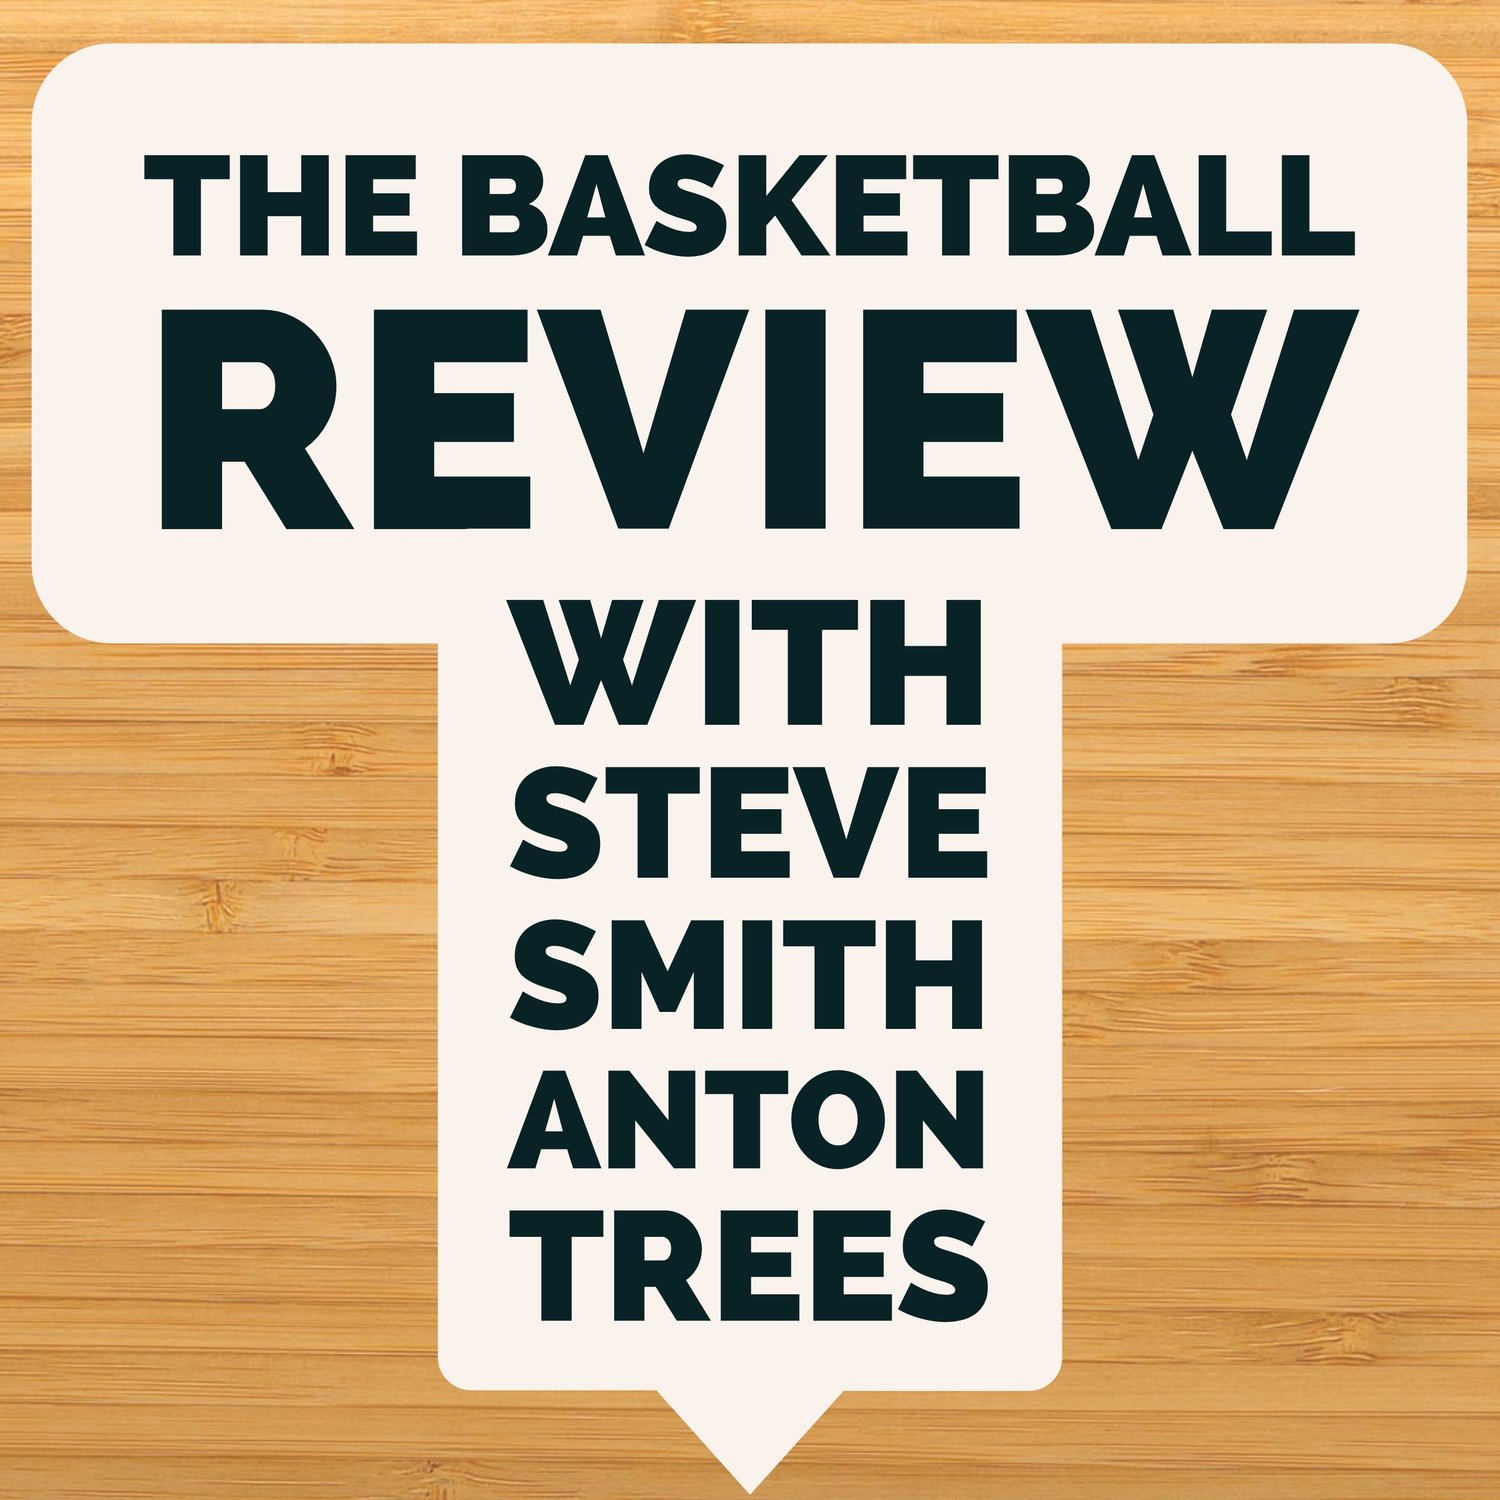 The Basketball Review